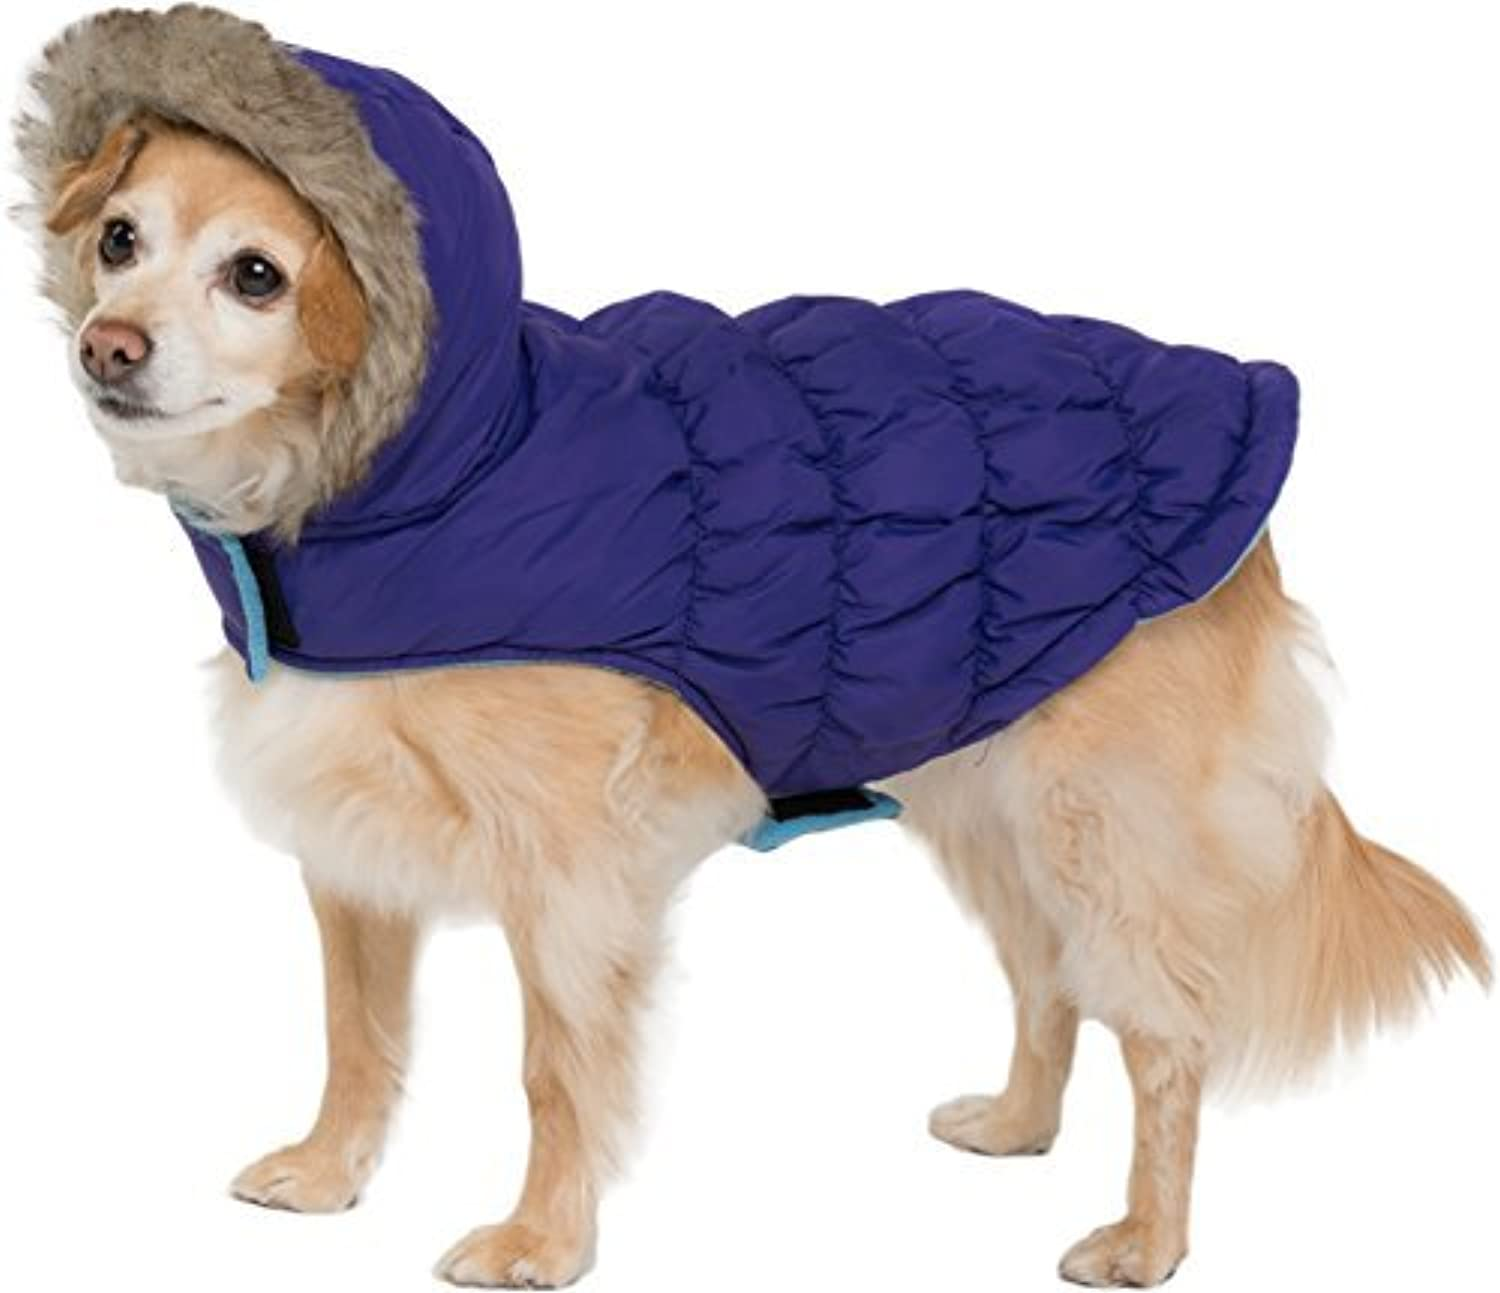 Navy bluee Quilted Vest Cozy Waterproof Windproof Winter Jacket Coat Sweater Hoodie Furry Collar Citron Harness Pet Puppy Dog Christmas Clothes Costume Outwear Coat Apparel Cat (Medium)